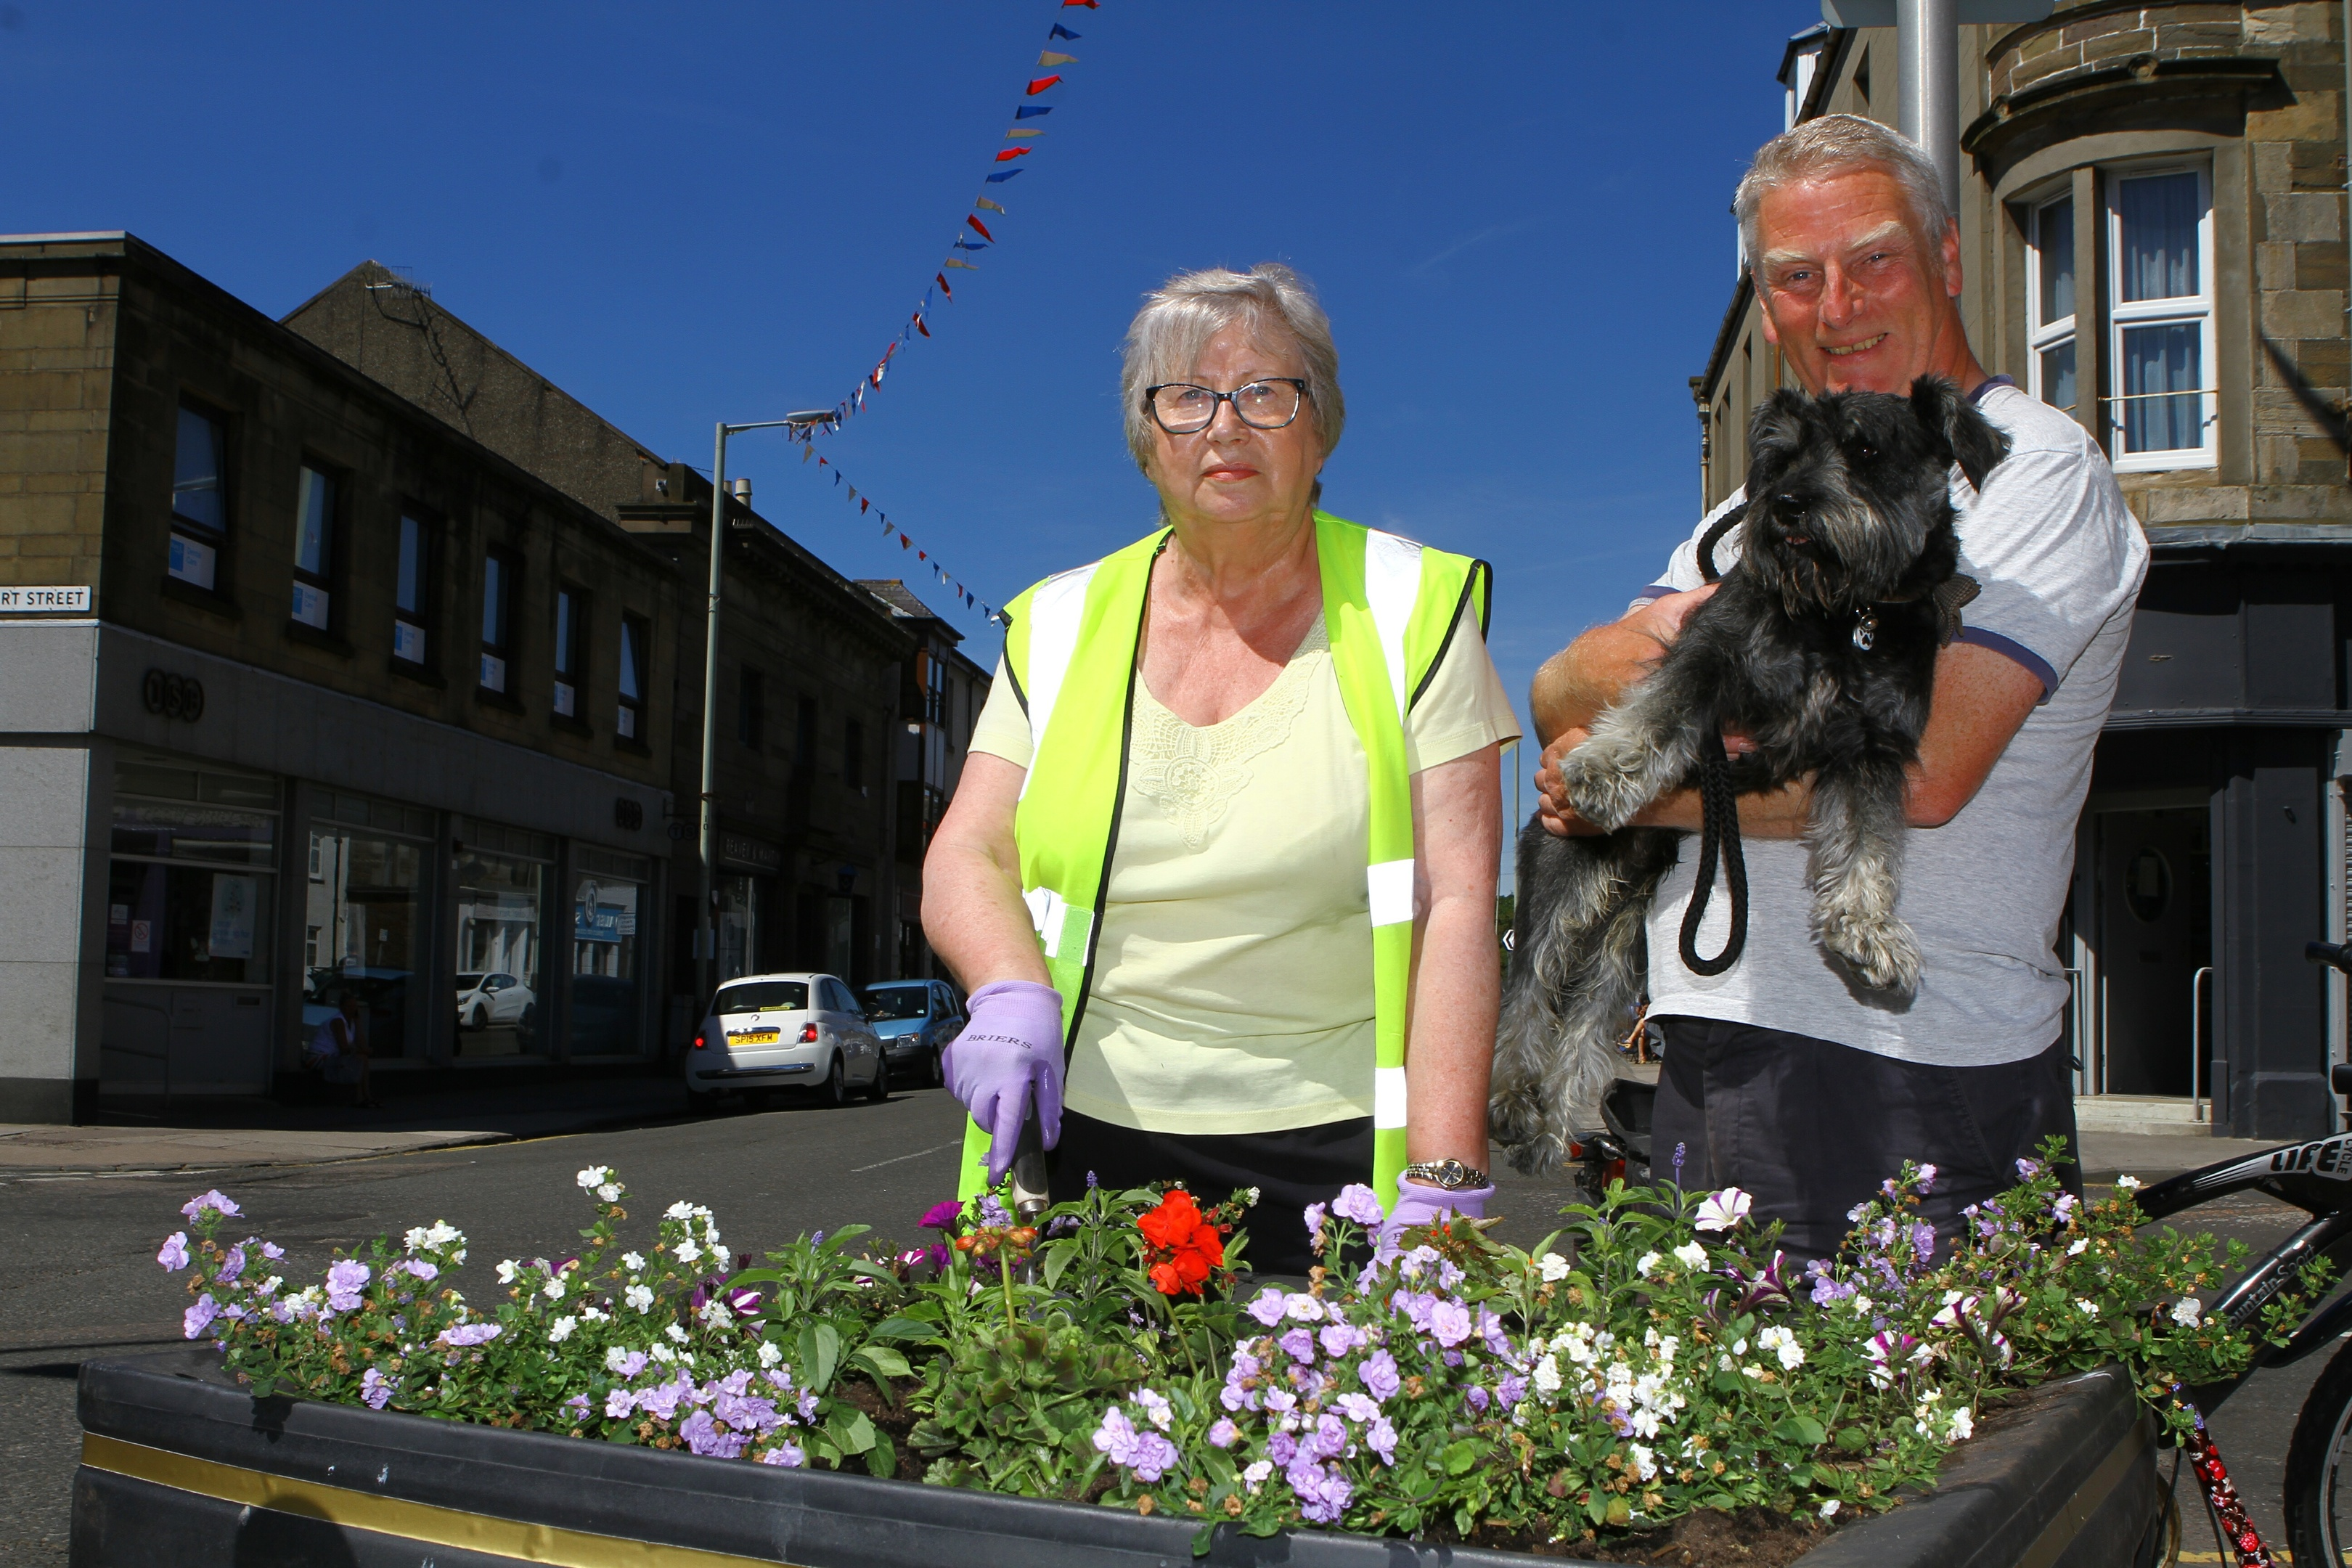 Joan Chalmers of Broughty Ferrry in Bloom and Councillor Craig Duncan repair damage to one of the planters